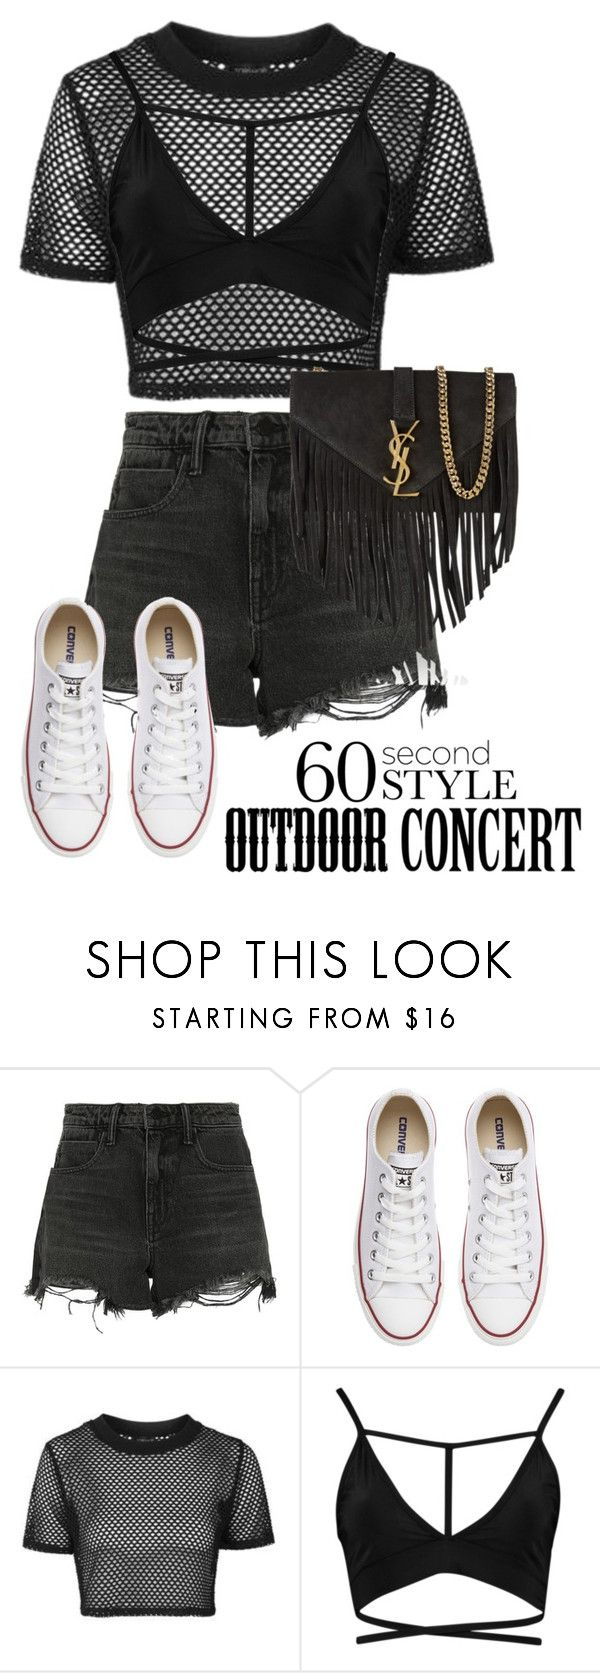 """Jon Bellion Pt III"" by jloveespinal ❤ liked on Polyvore featuring Alexander Wang, Converse, Topshop, Boohoo, Yves Saint Laurent, 60secondstyle and outdoorconcerts"